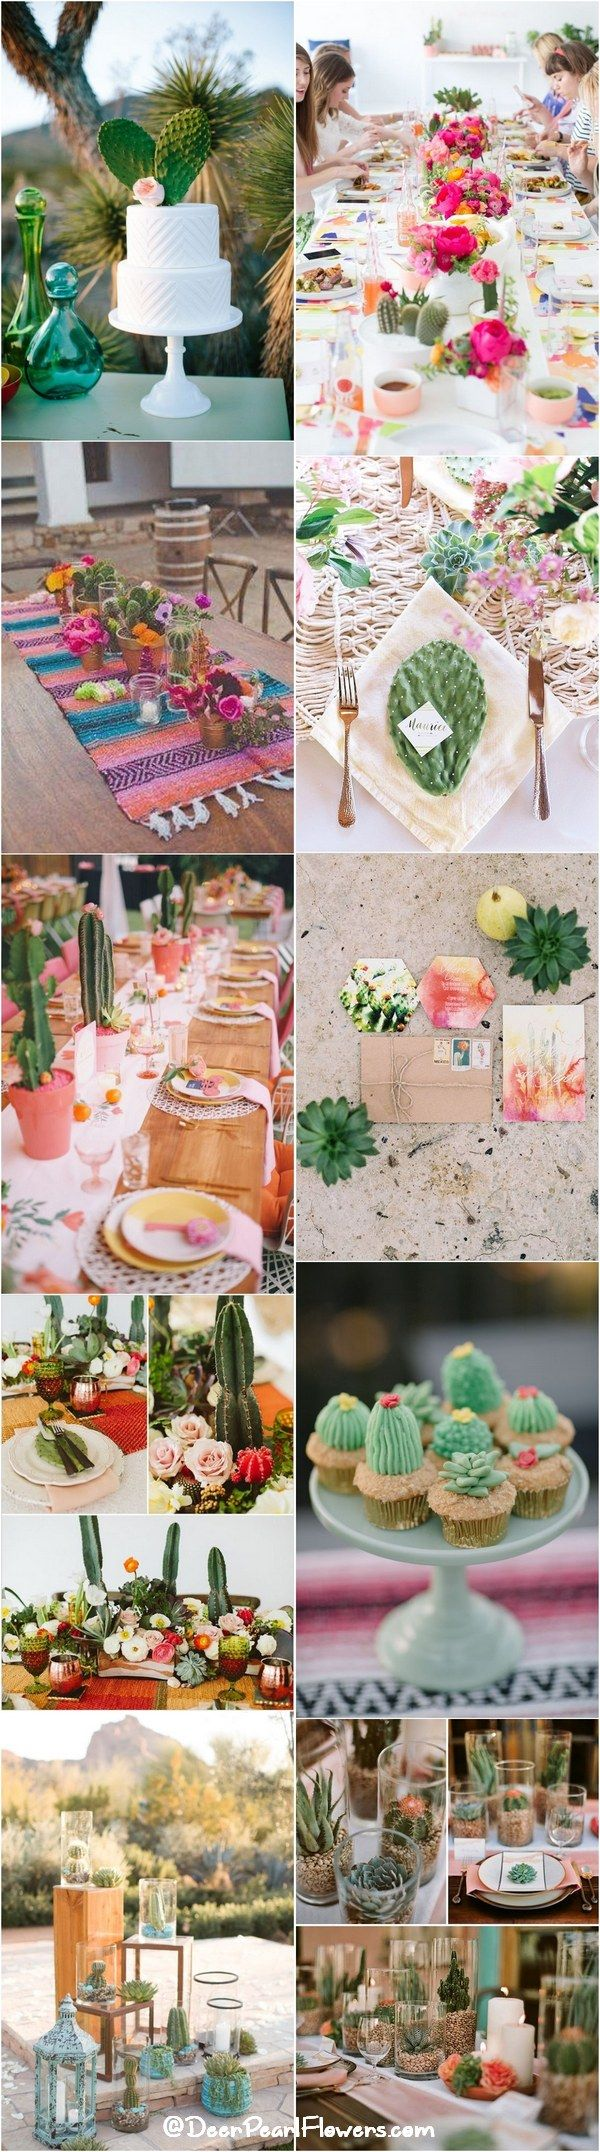 Mexican wedding decoration ideas  rustic cactus wedding ideas and themes  erpearlflowers